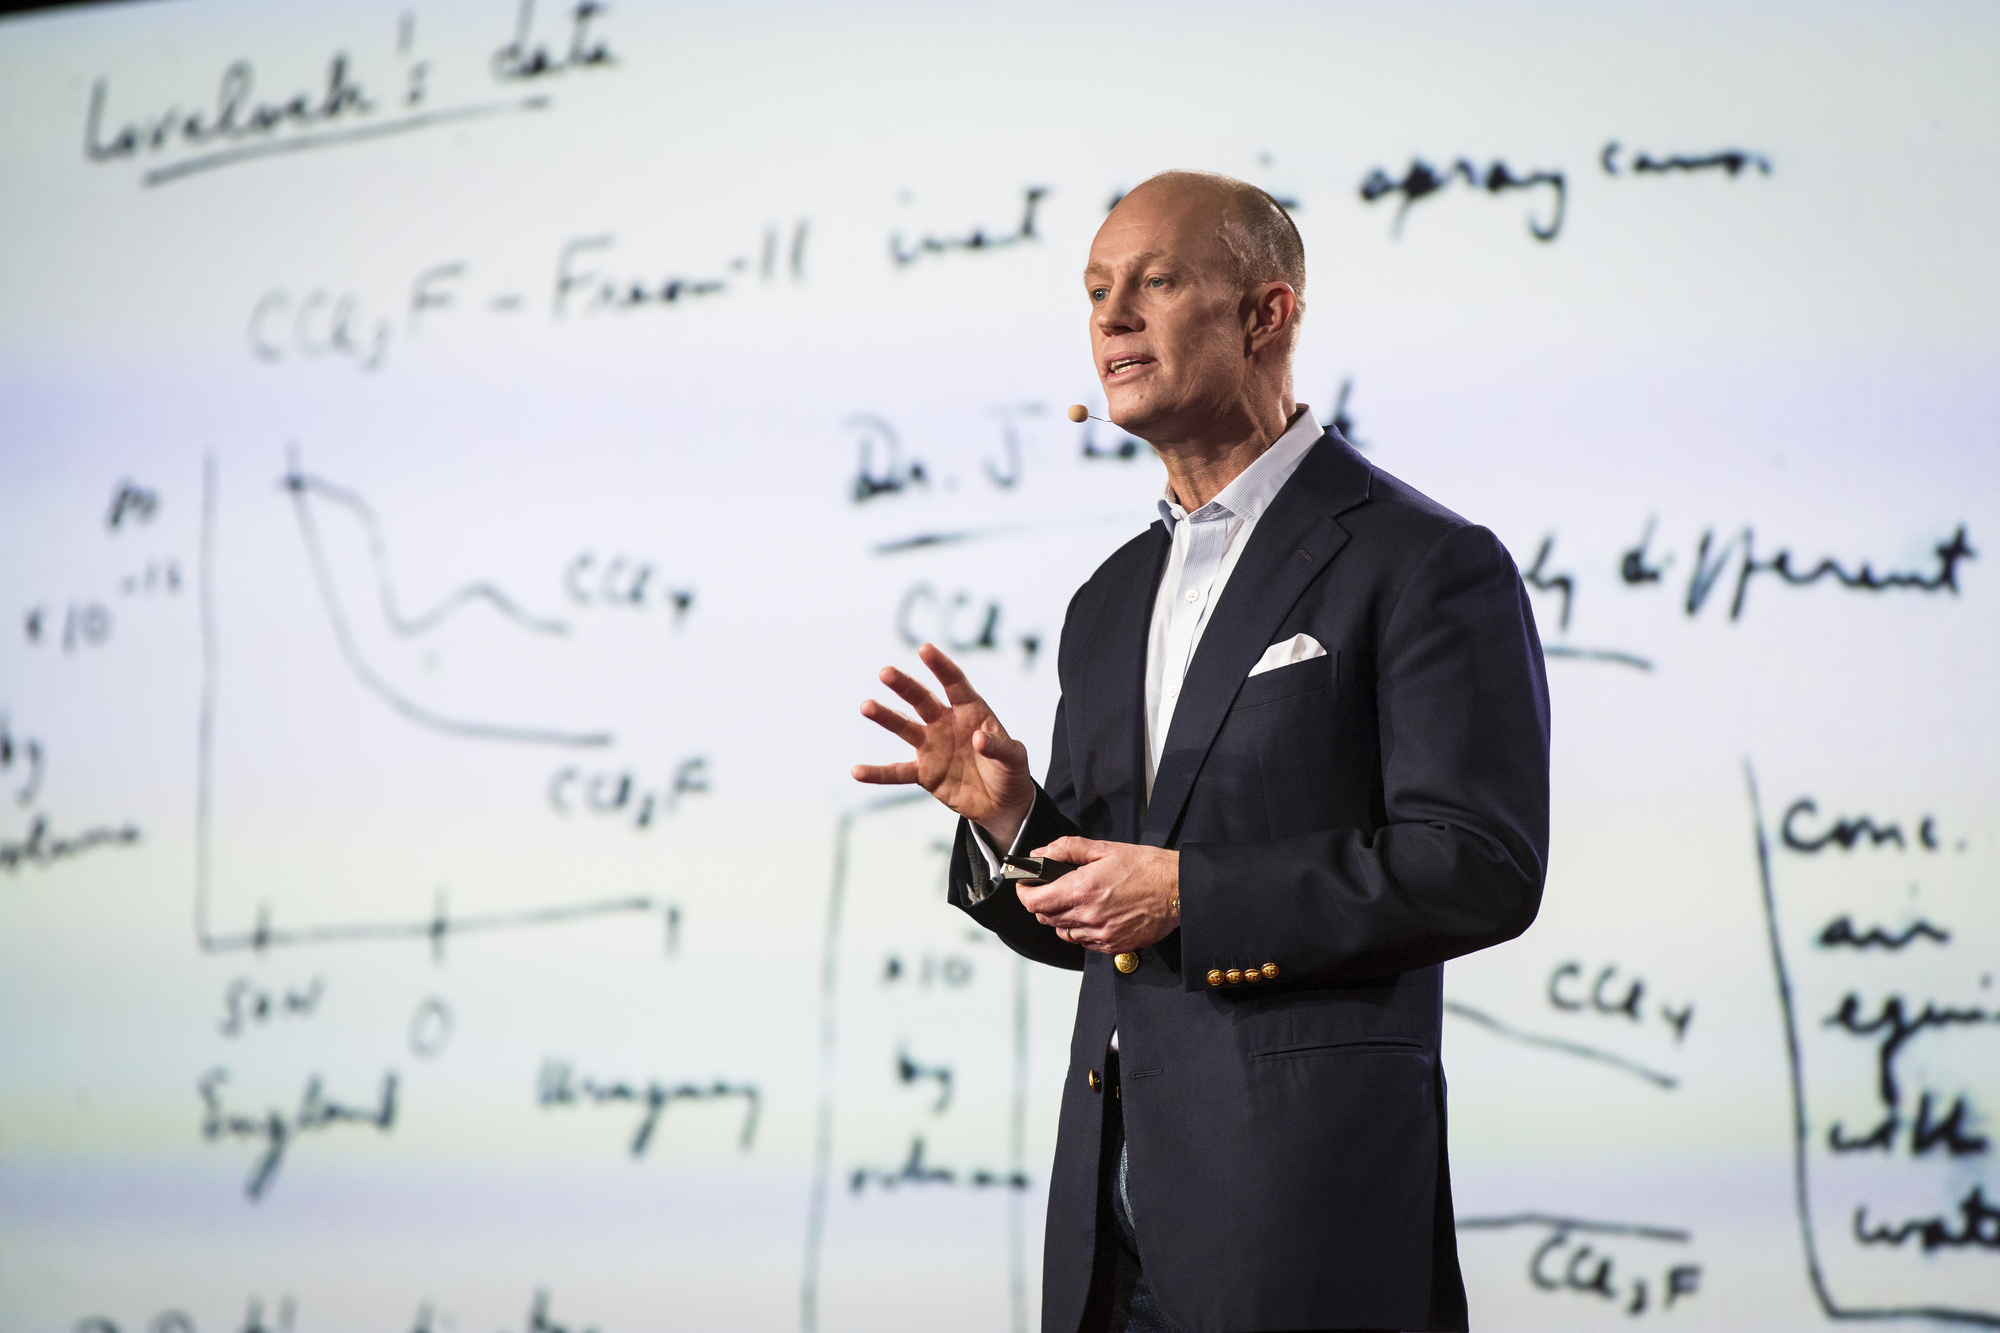 Jason Pontin at TED University. TED2016. February 15-19, 2016, Vancouver Convention Center, Vancouver, Canada. Photo: Ryan Lash / TED